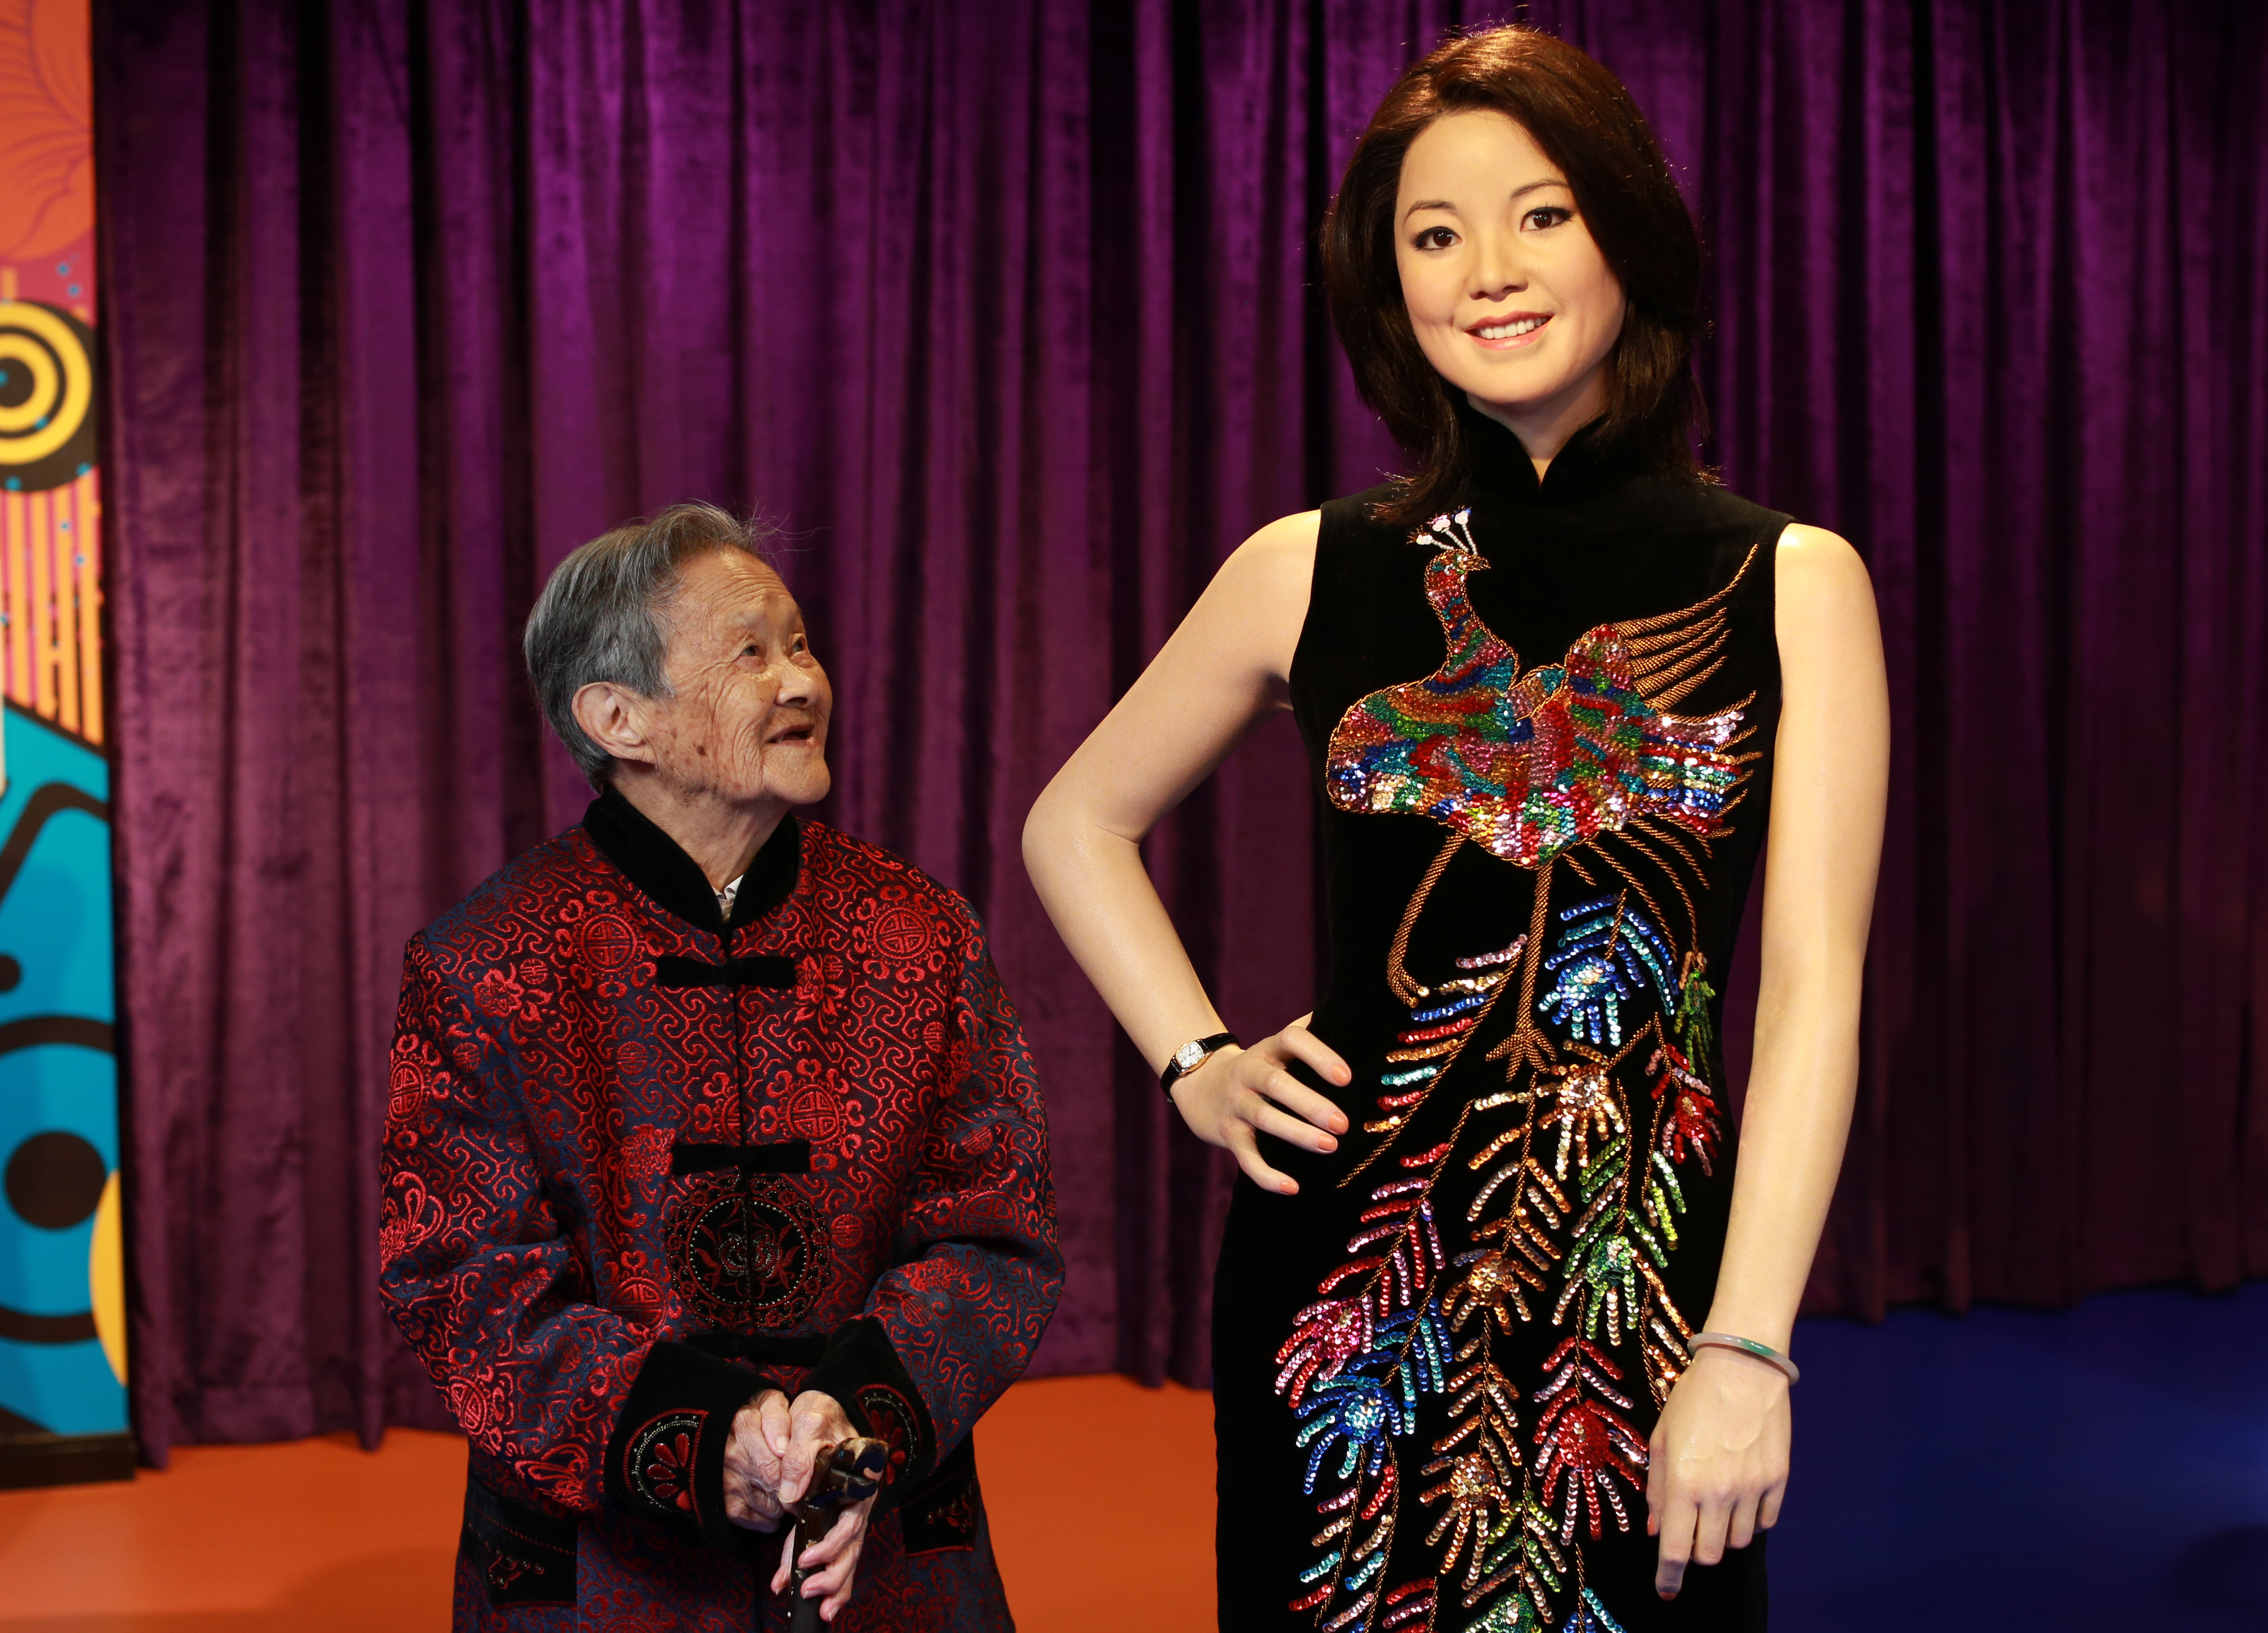 uang Xiaogui, 100 years old, poses with a wax figure of Teresa Teng at Madame Tussauds on in Wuhan, China on Oct. 11, 2013.